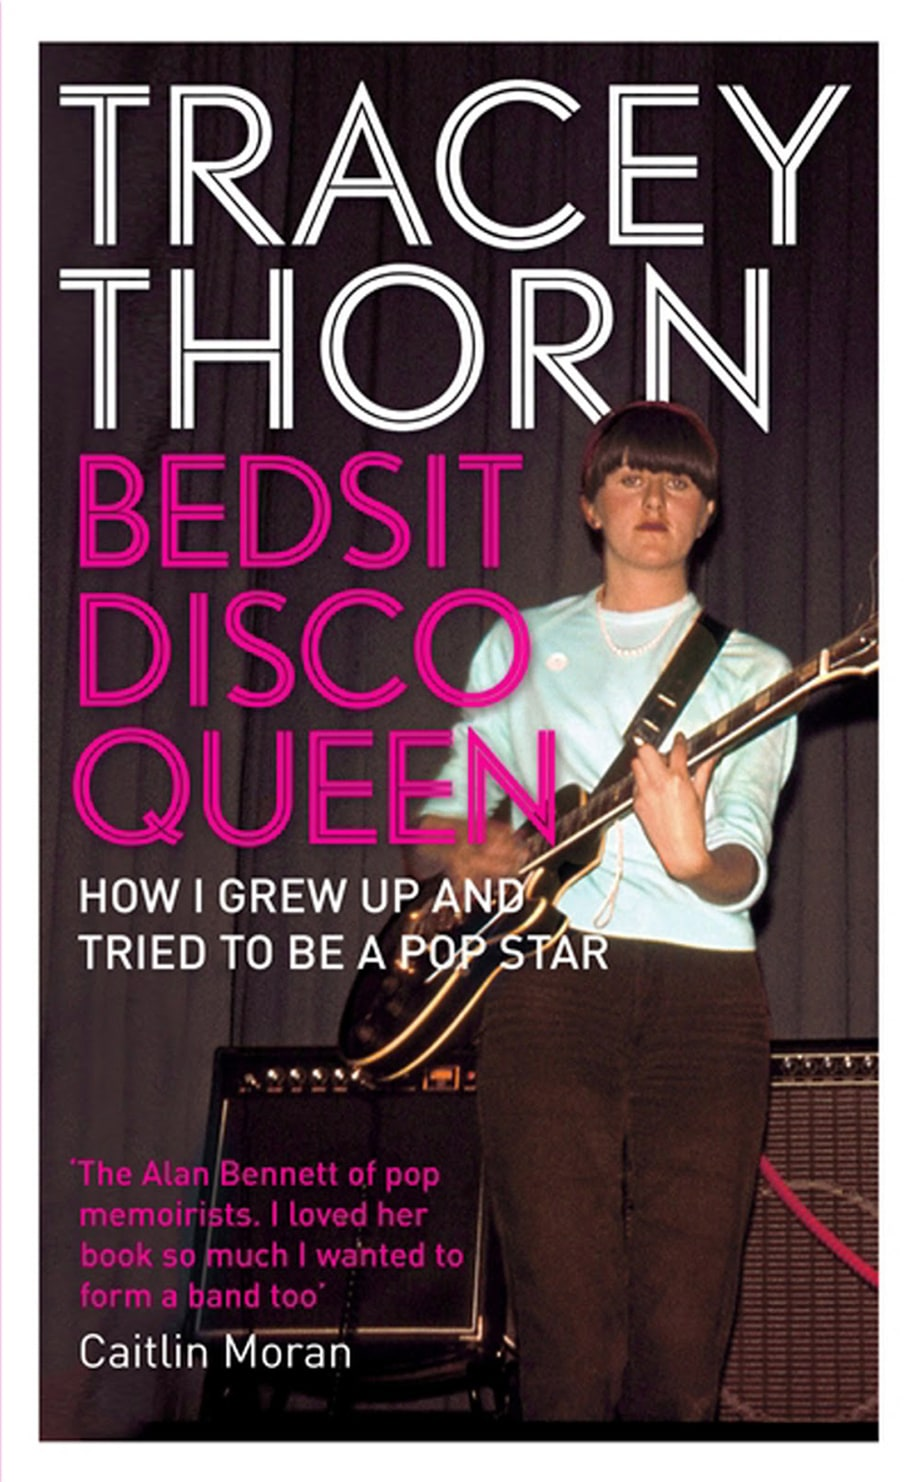 'Bedsit Disco Queen: How I Grew Up And Tried To Be A Pop Star' by Tracy Thorn